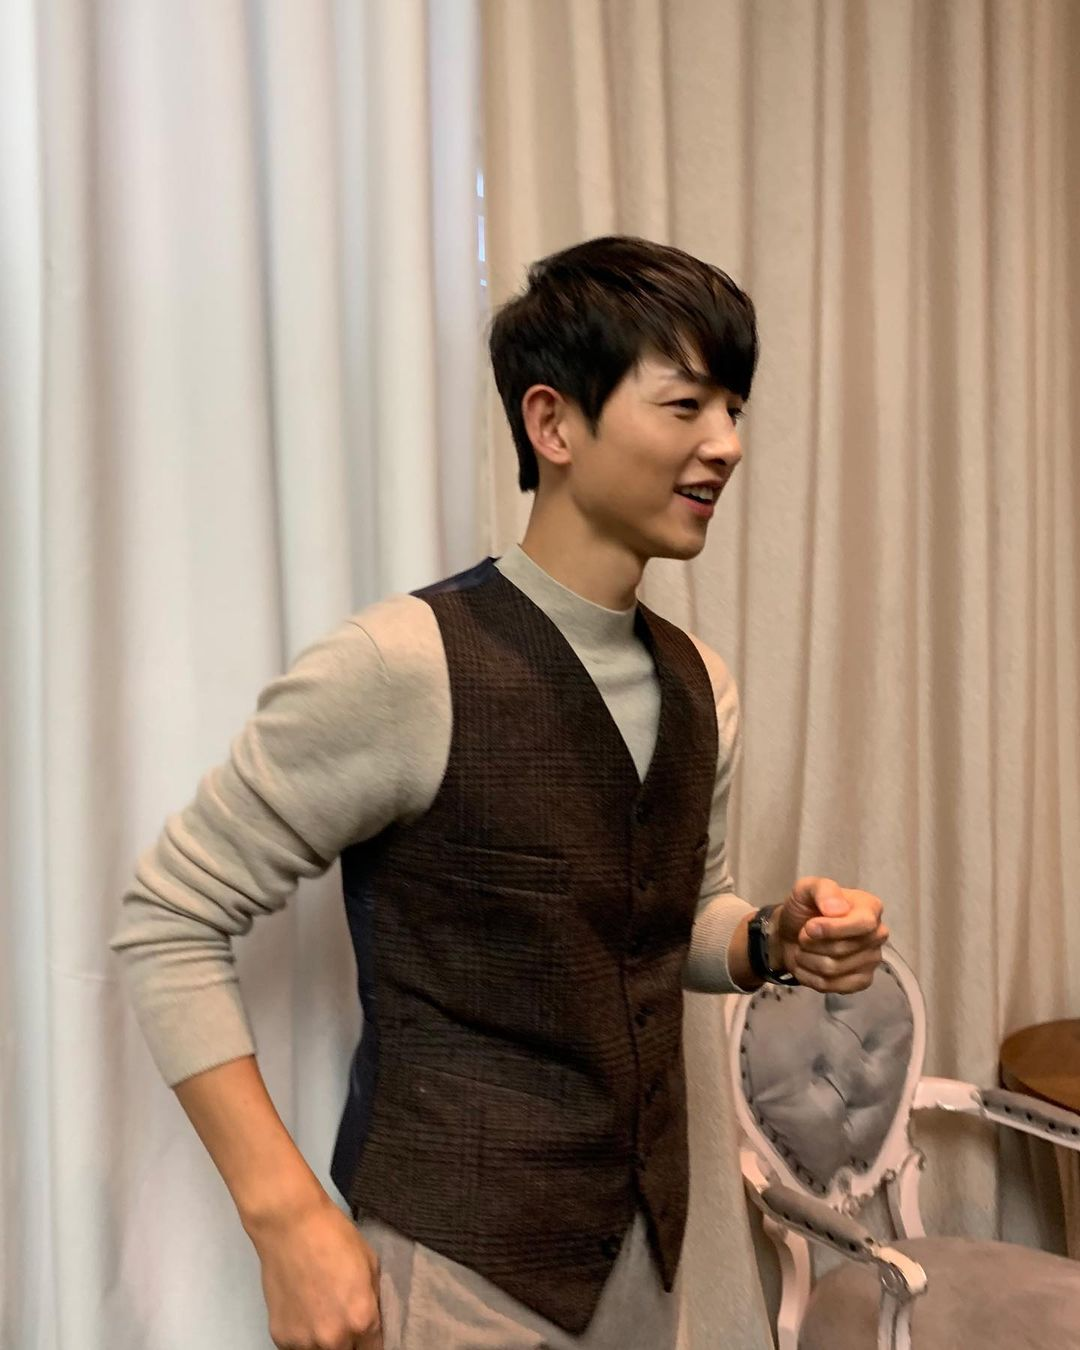 Song Joong Ki is a hardworking actor